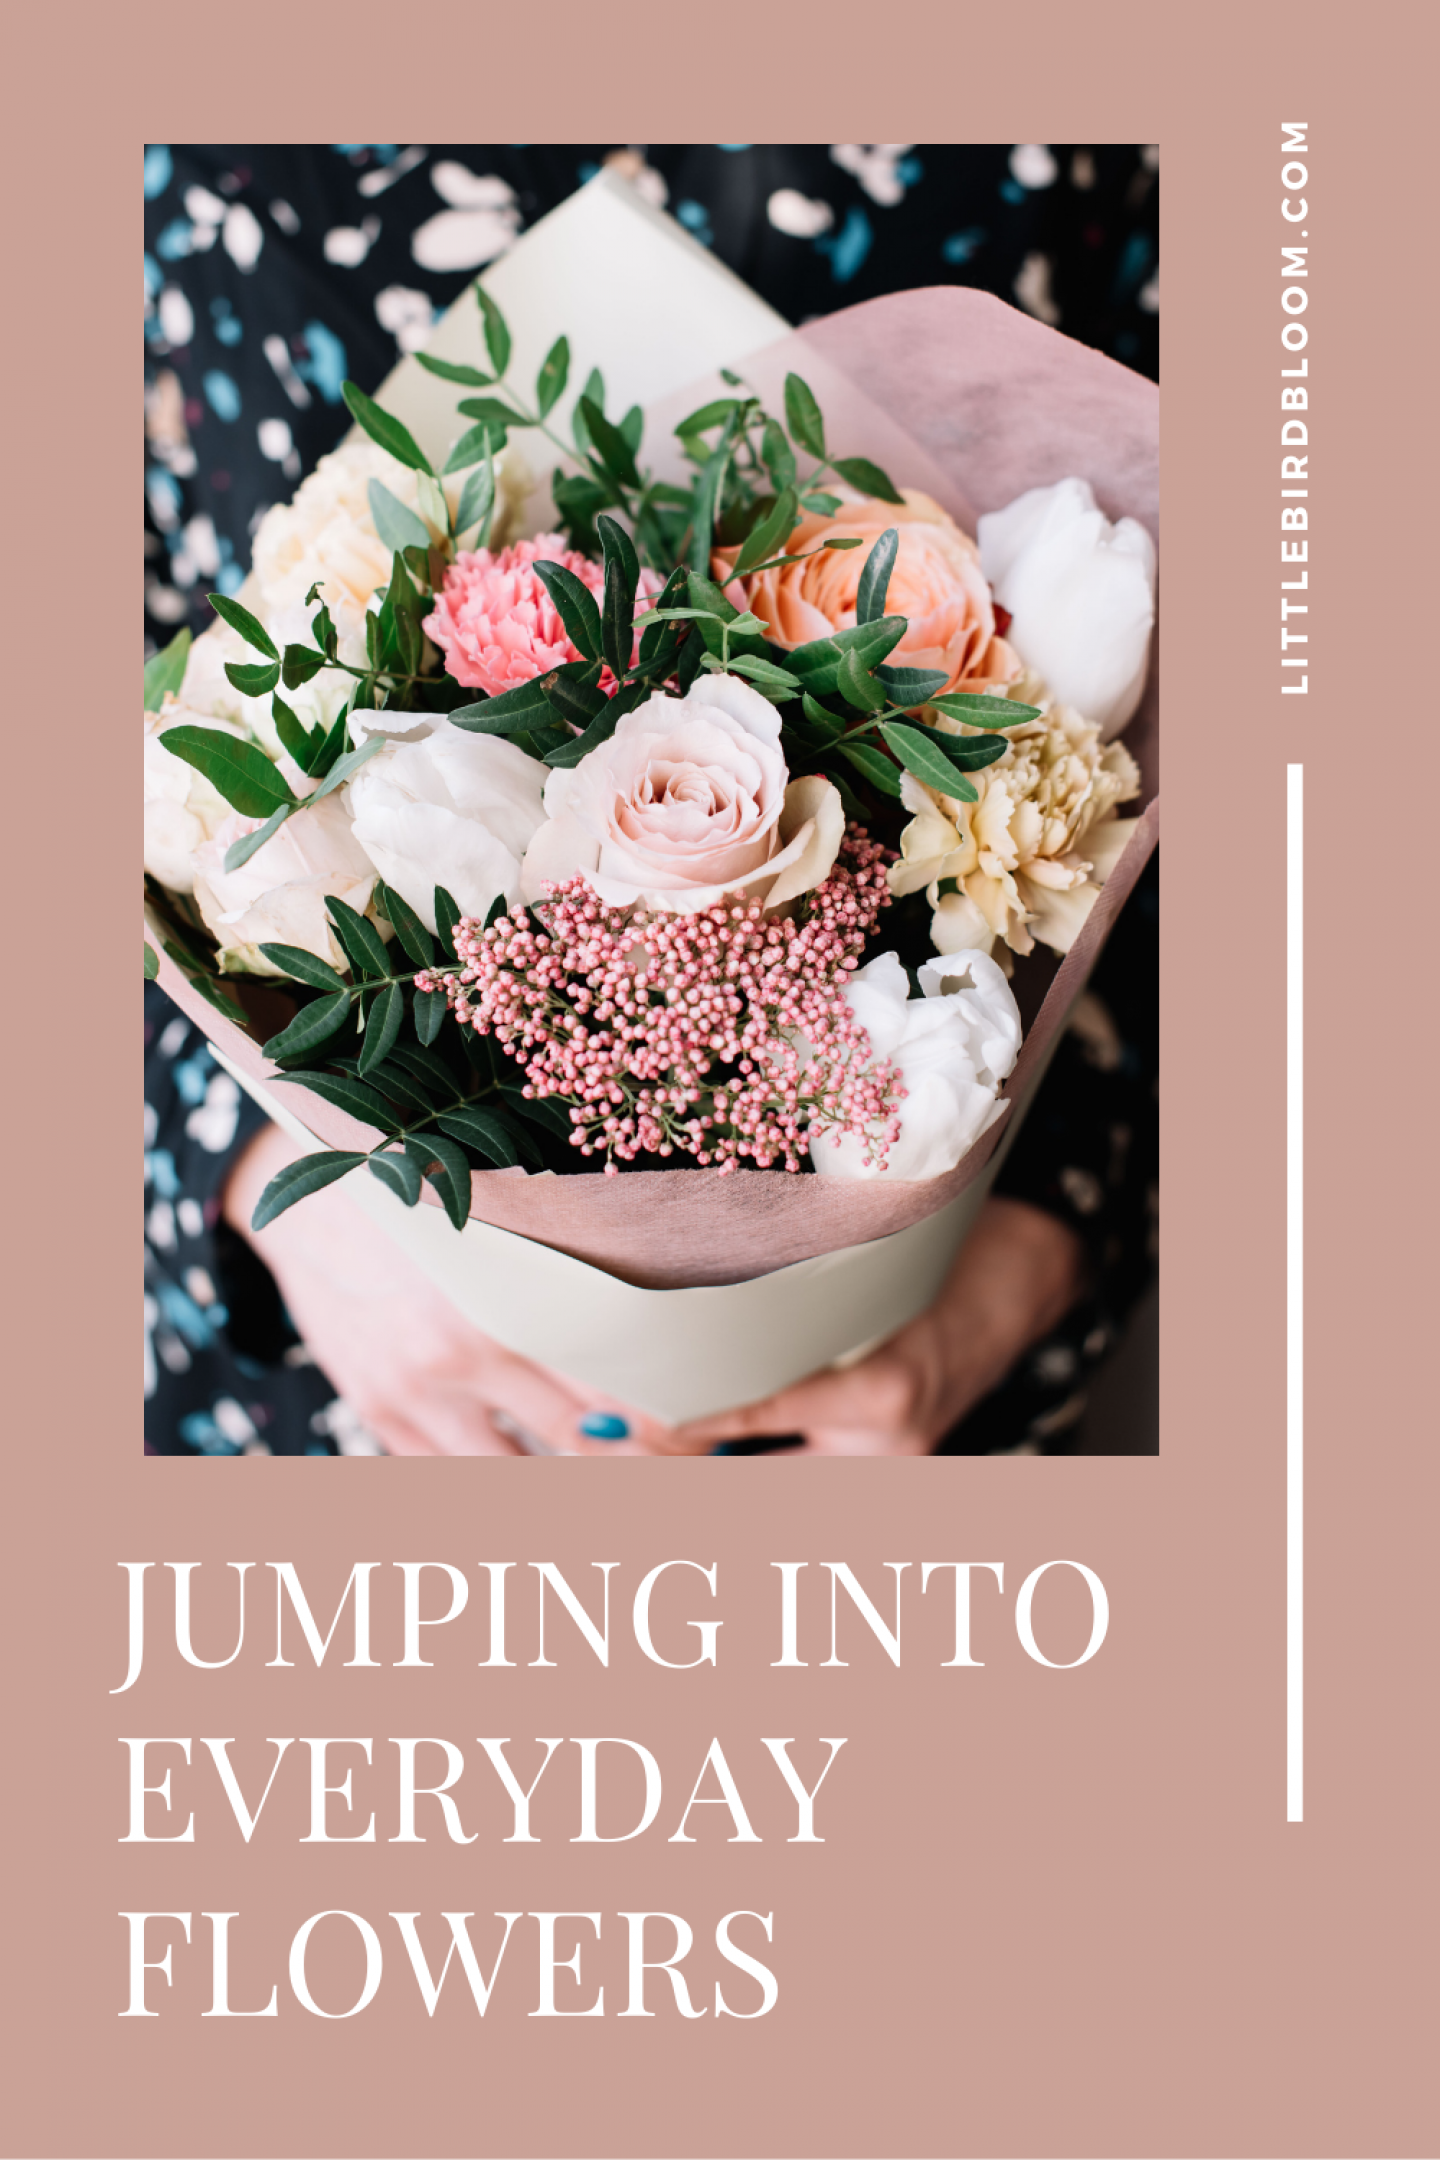 podcast for floral designers business and flowers (19)